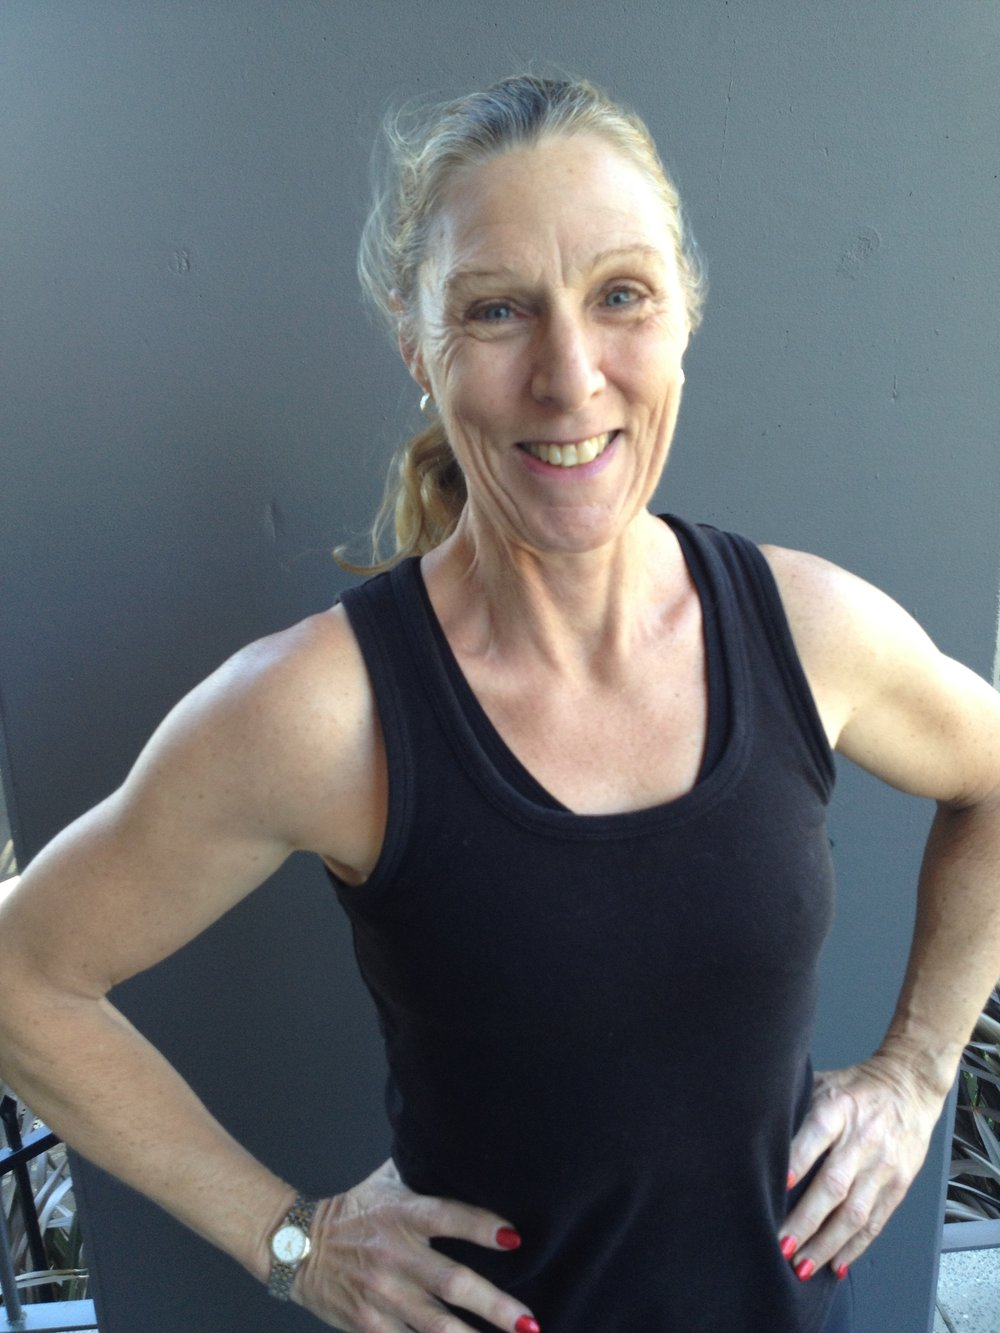 Edwina Street - Pilates & Barre Attack Instructor, Yoga Teacher & Personal Trainer